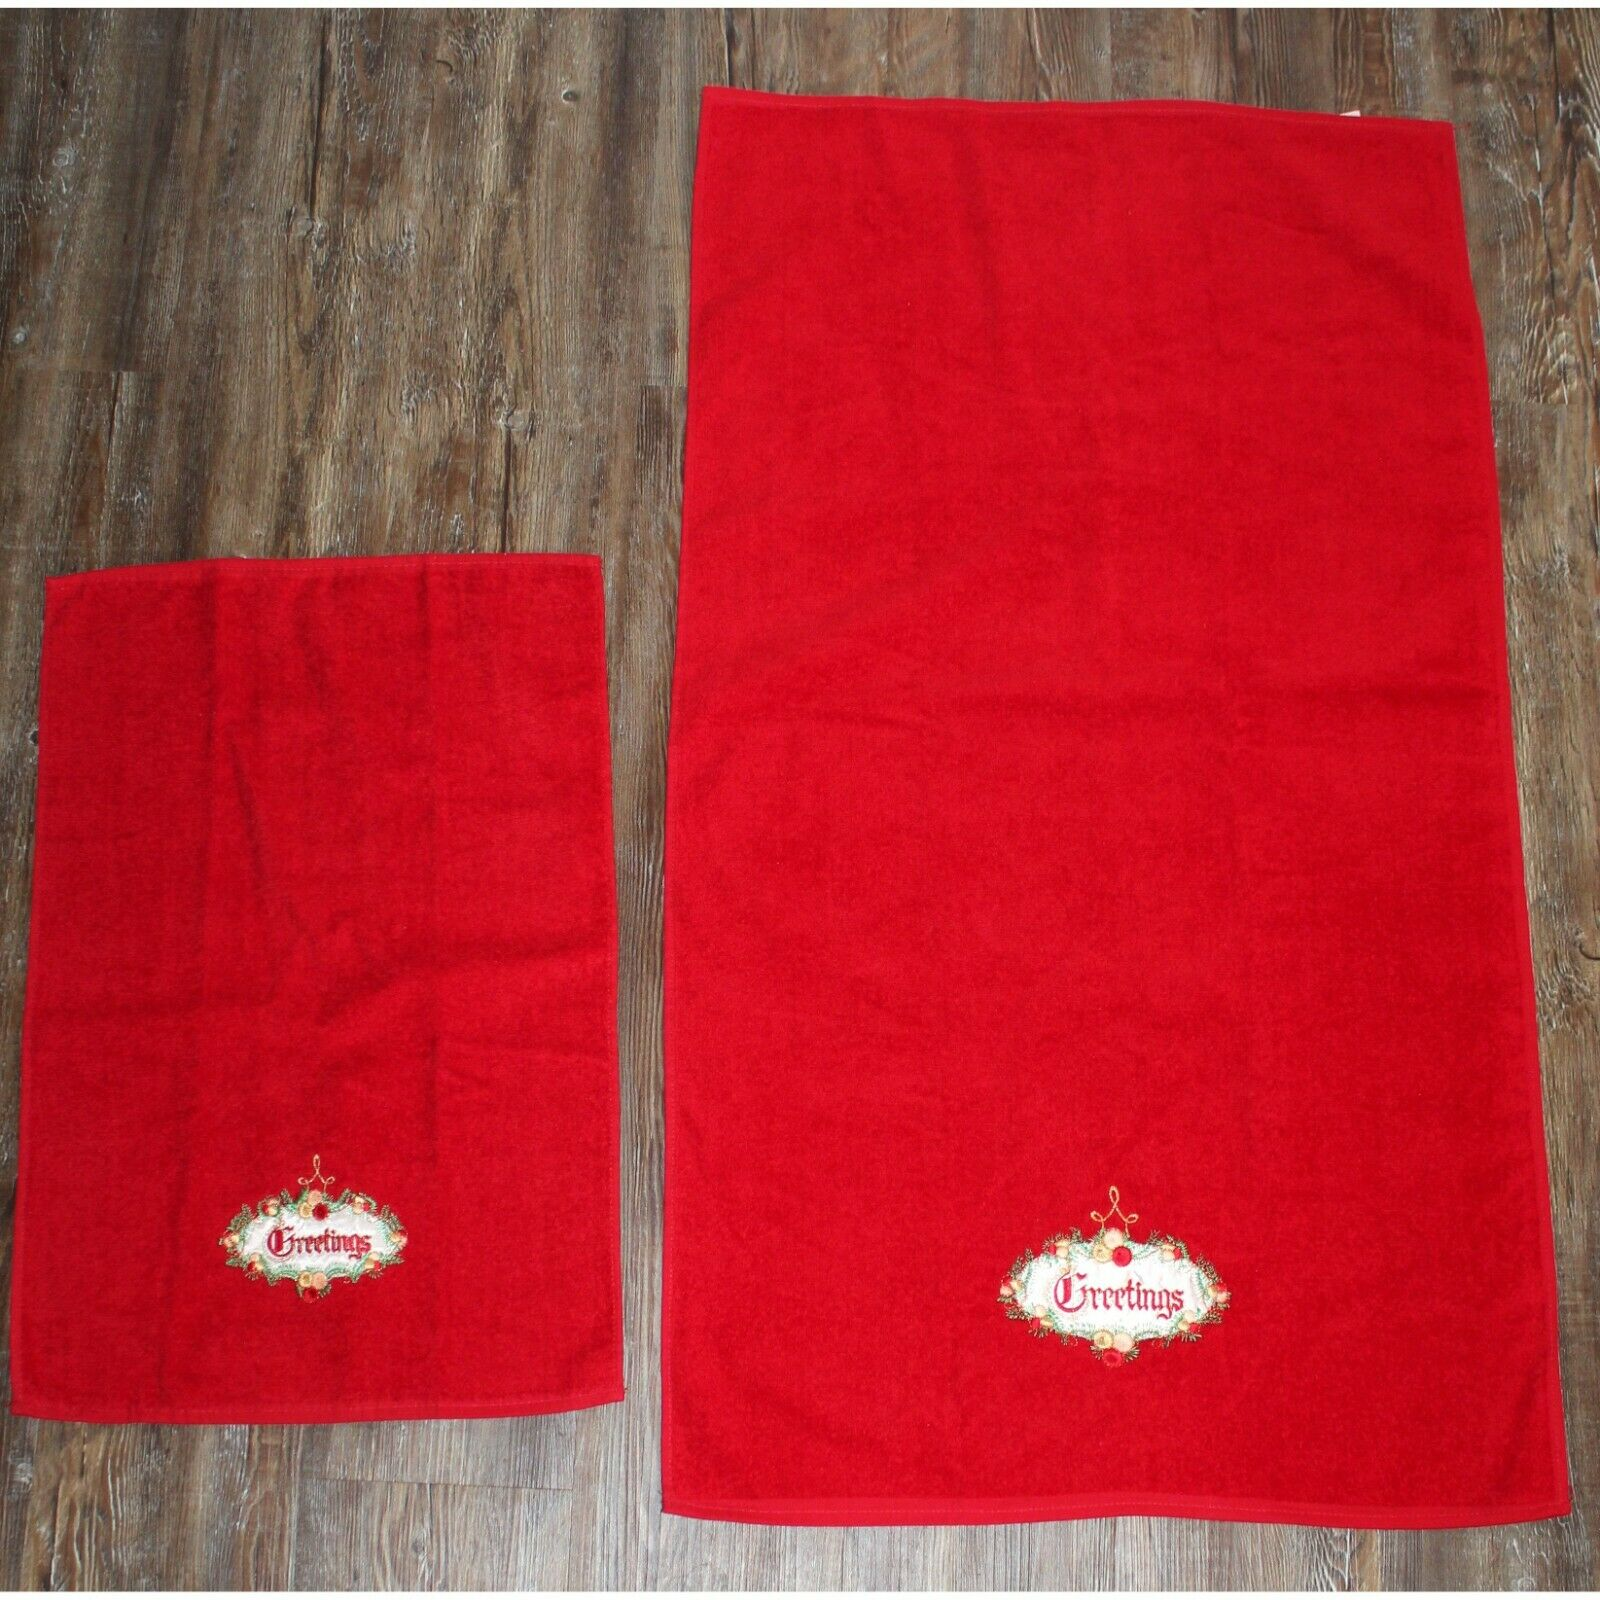 NEW Vtg Embroidered Greeting hand bath Towels by Cannon Christmas Decor Xmas USA